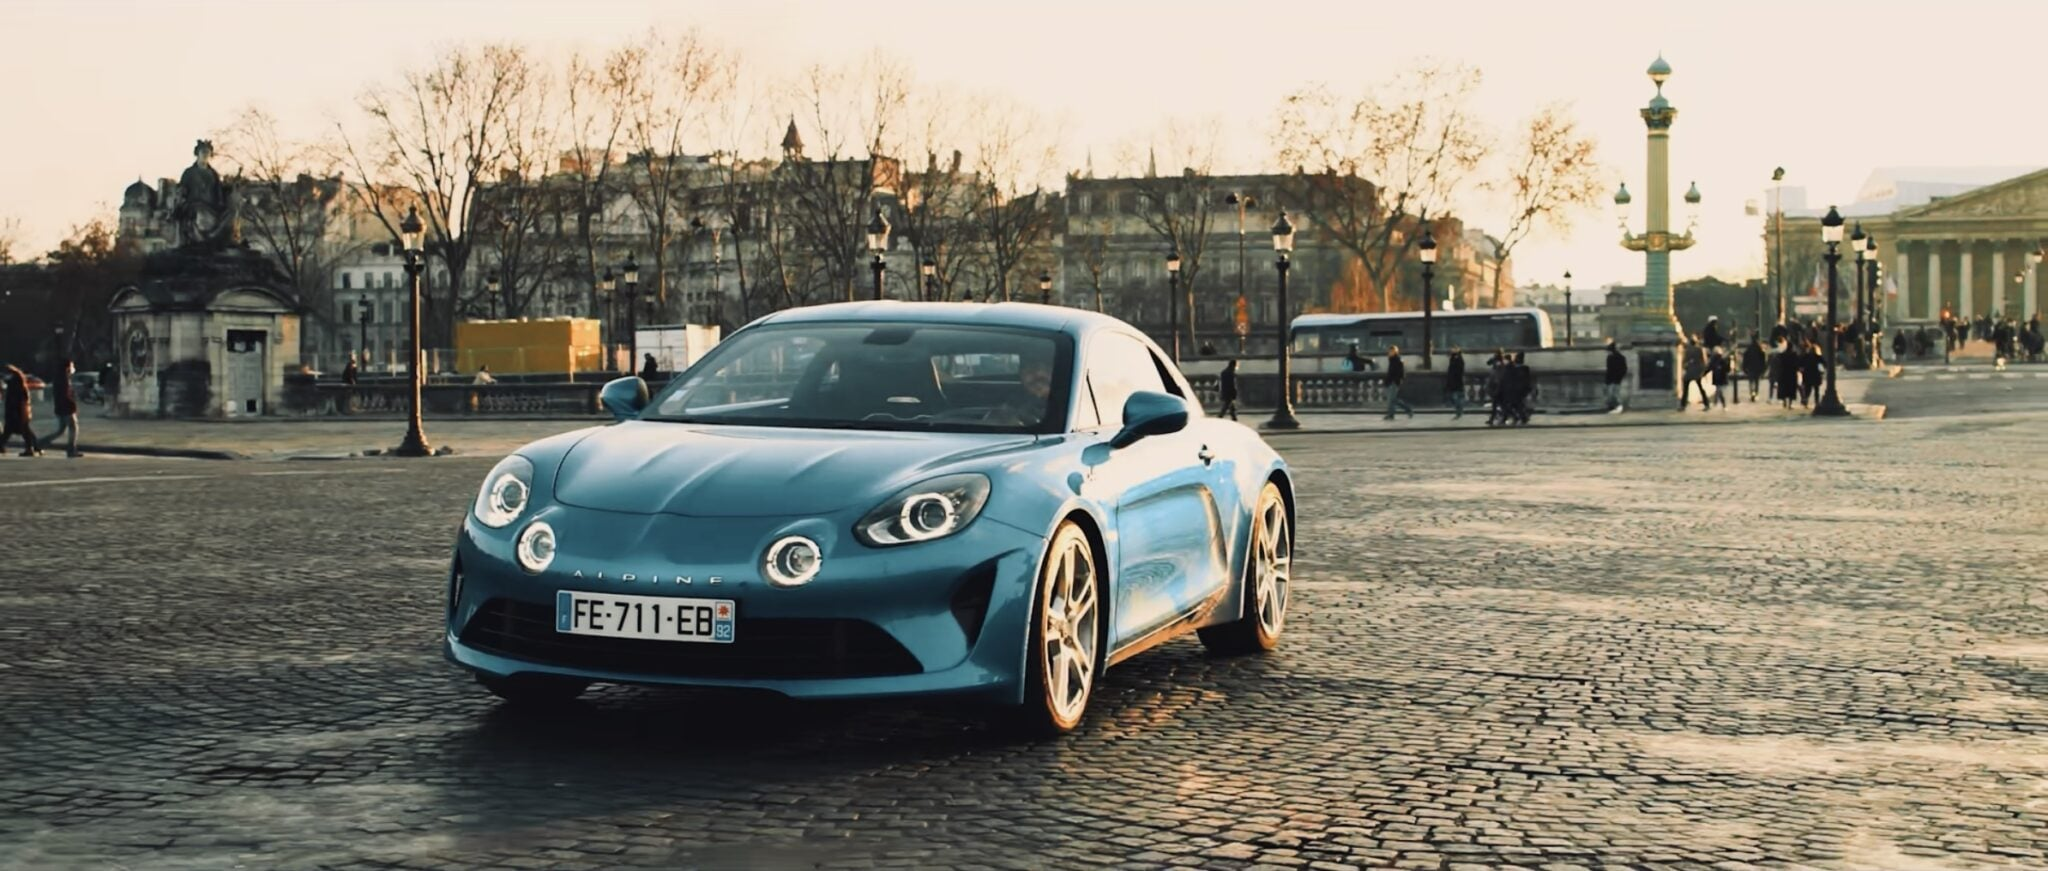 701AD59E 4975 41D7 8D5B FD5CA2DC62DF | A l'essai : Alpine A110, des sensations Pures.